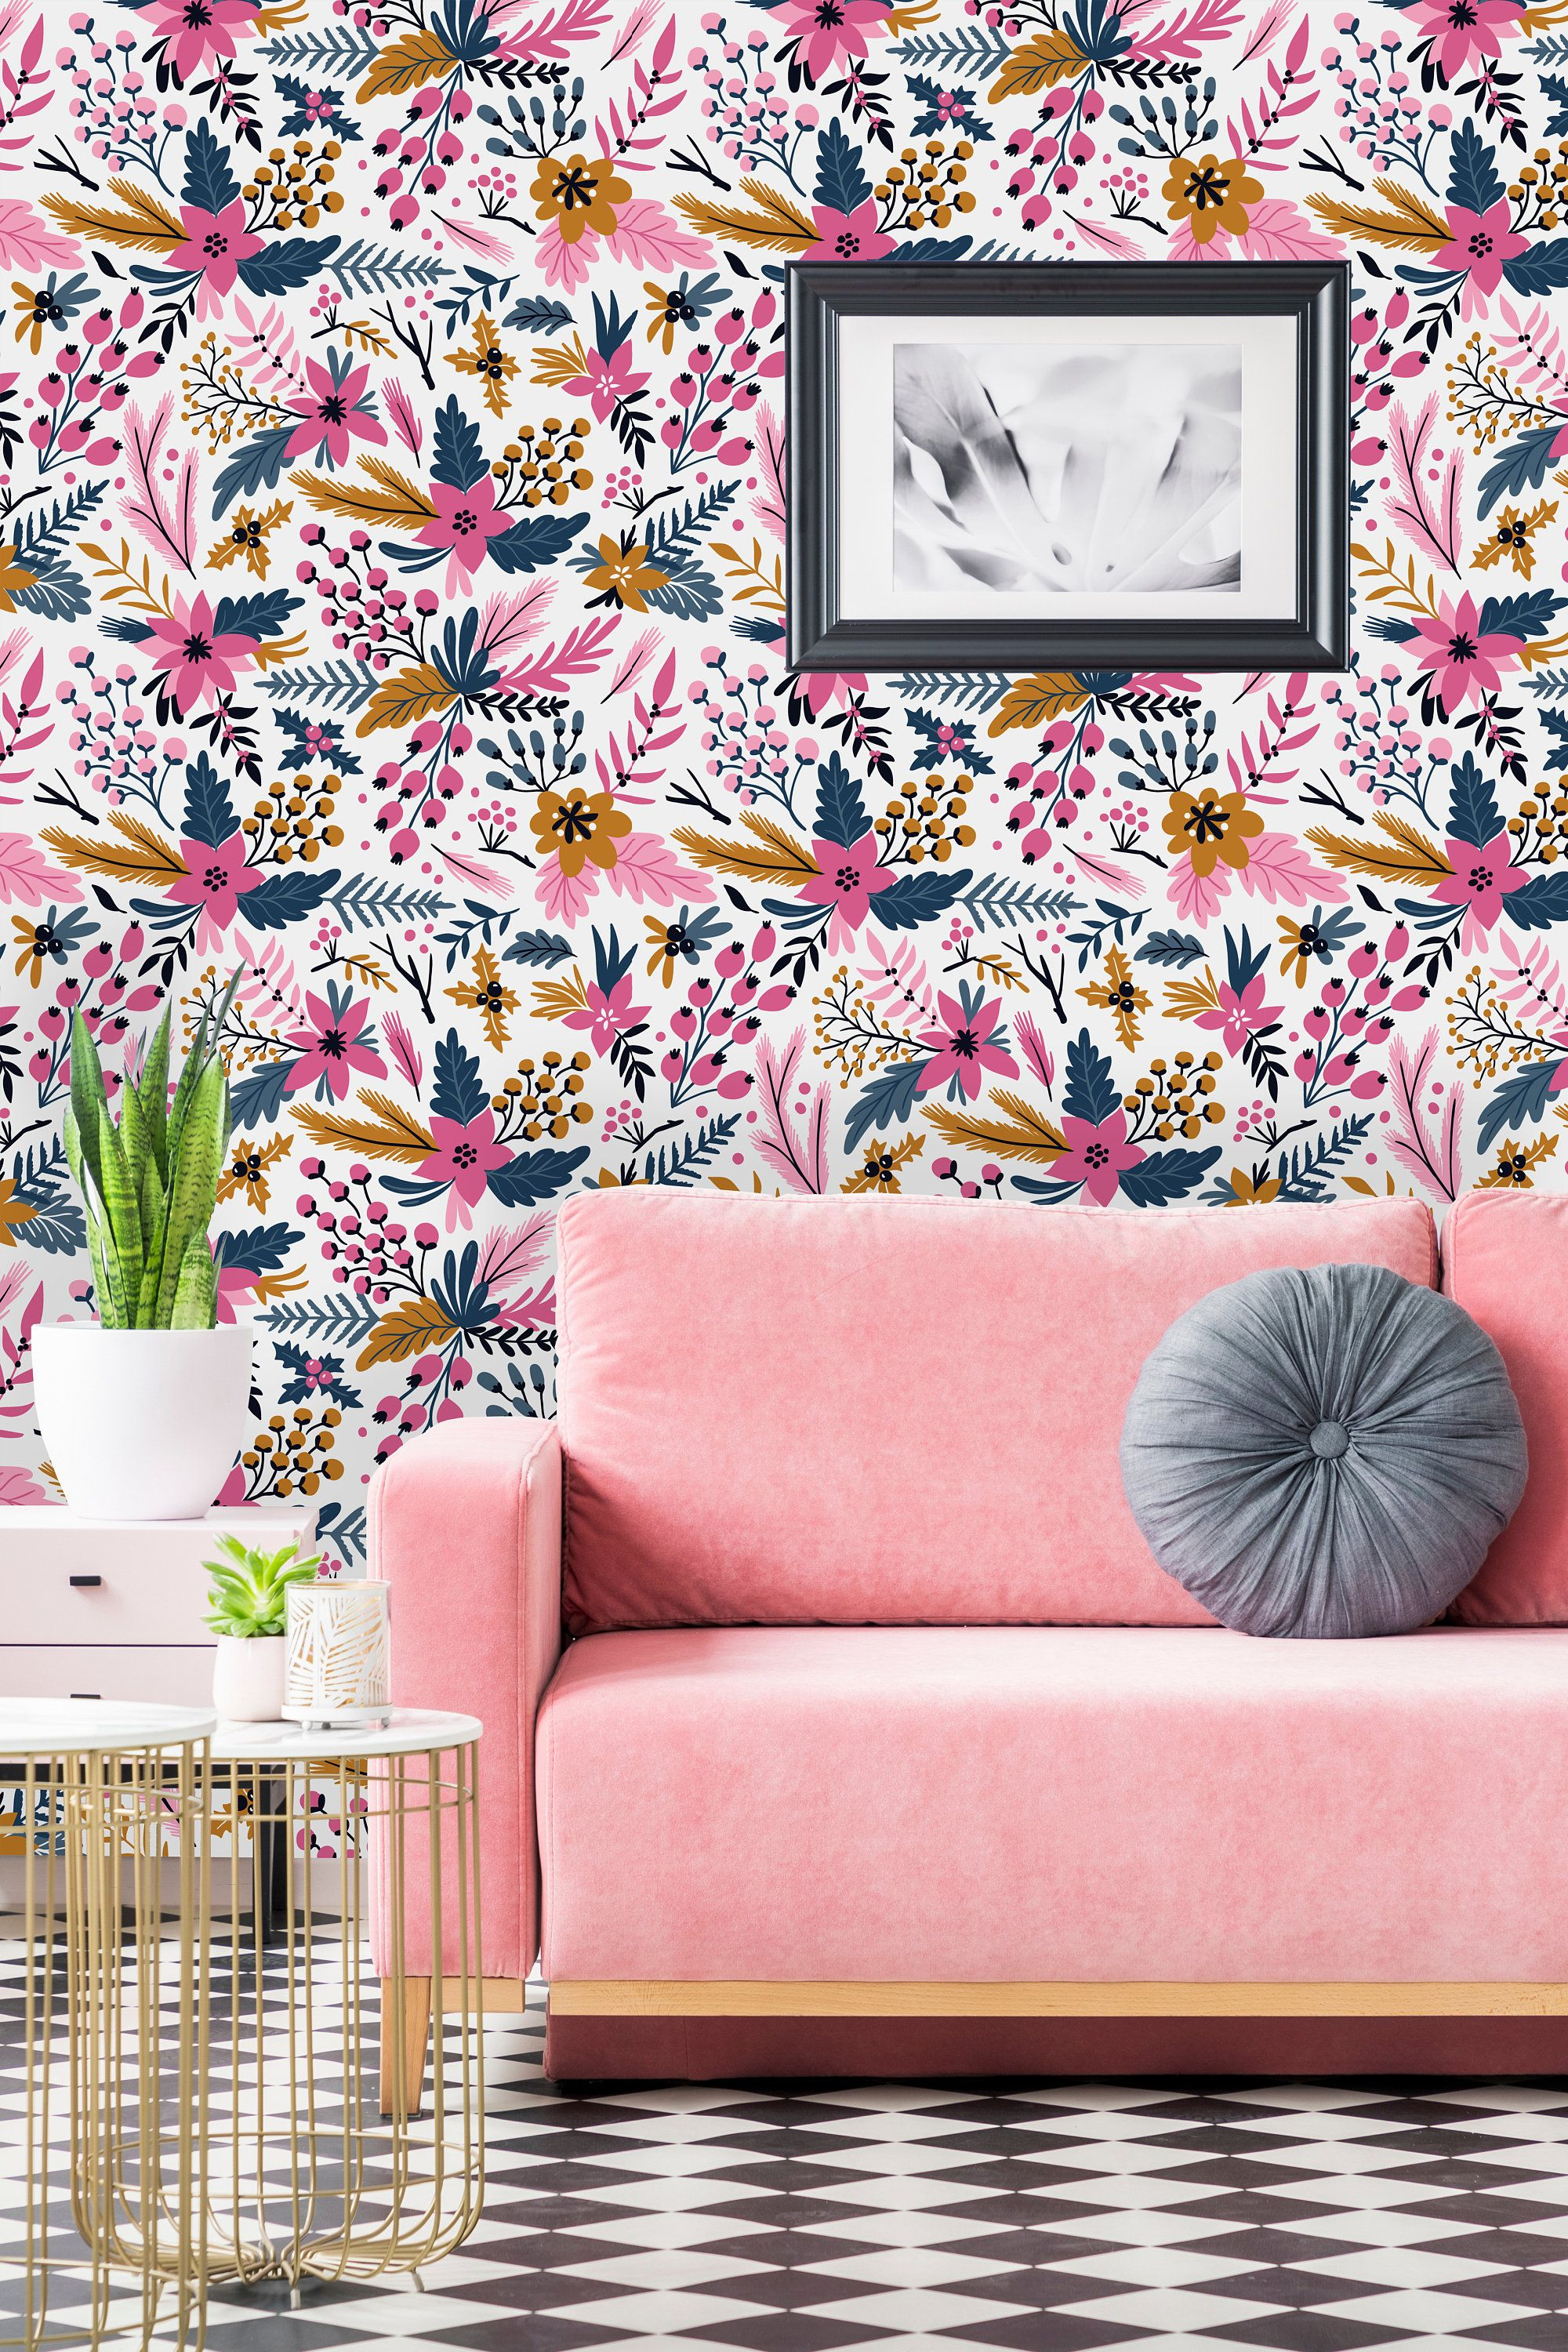 Bright Pink Flowers Removable Wallpaper Peel And Stick Etsy Wallpaper Pink And Blue Wall Wallpaper Wall Murals